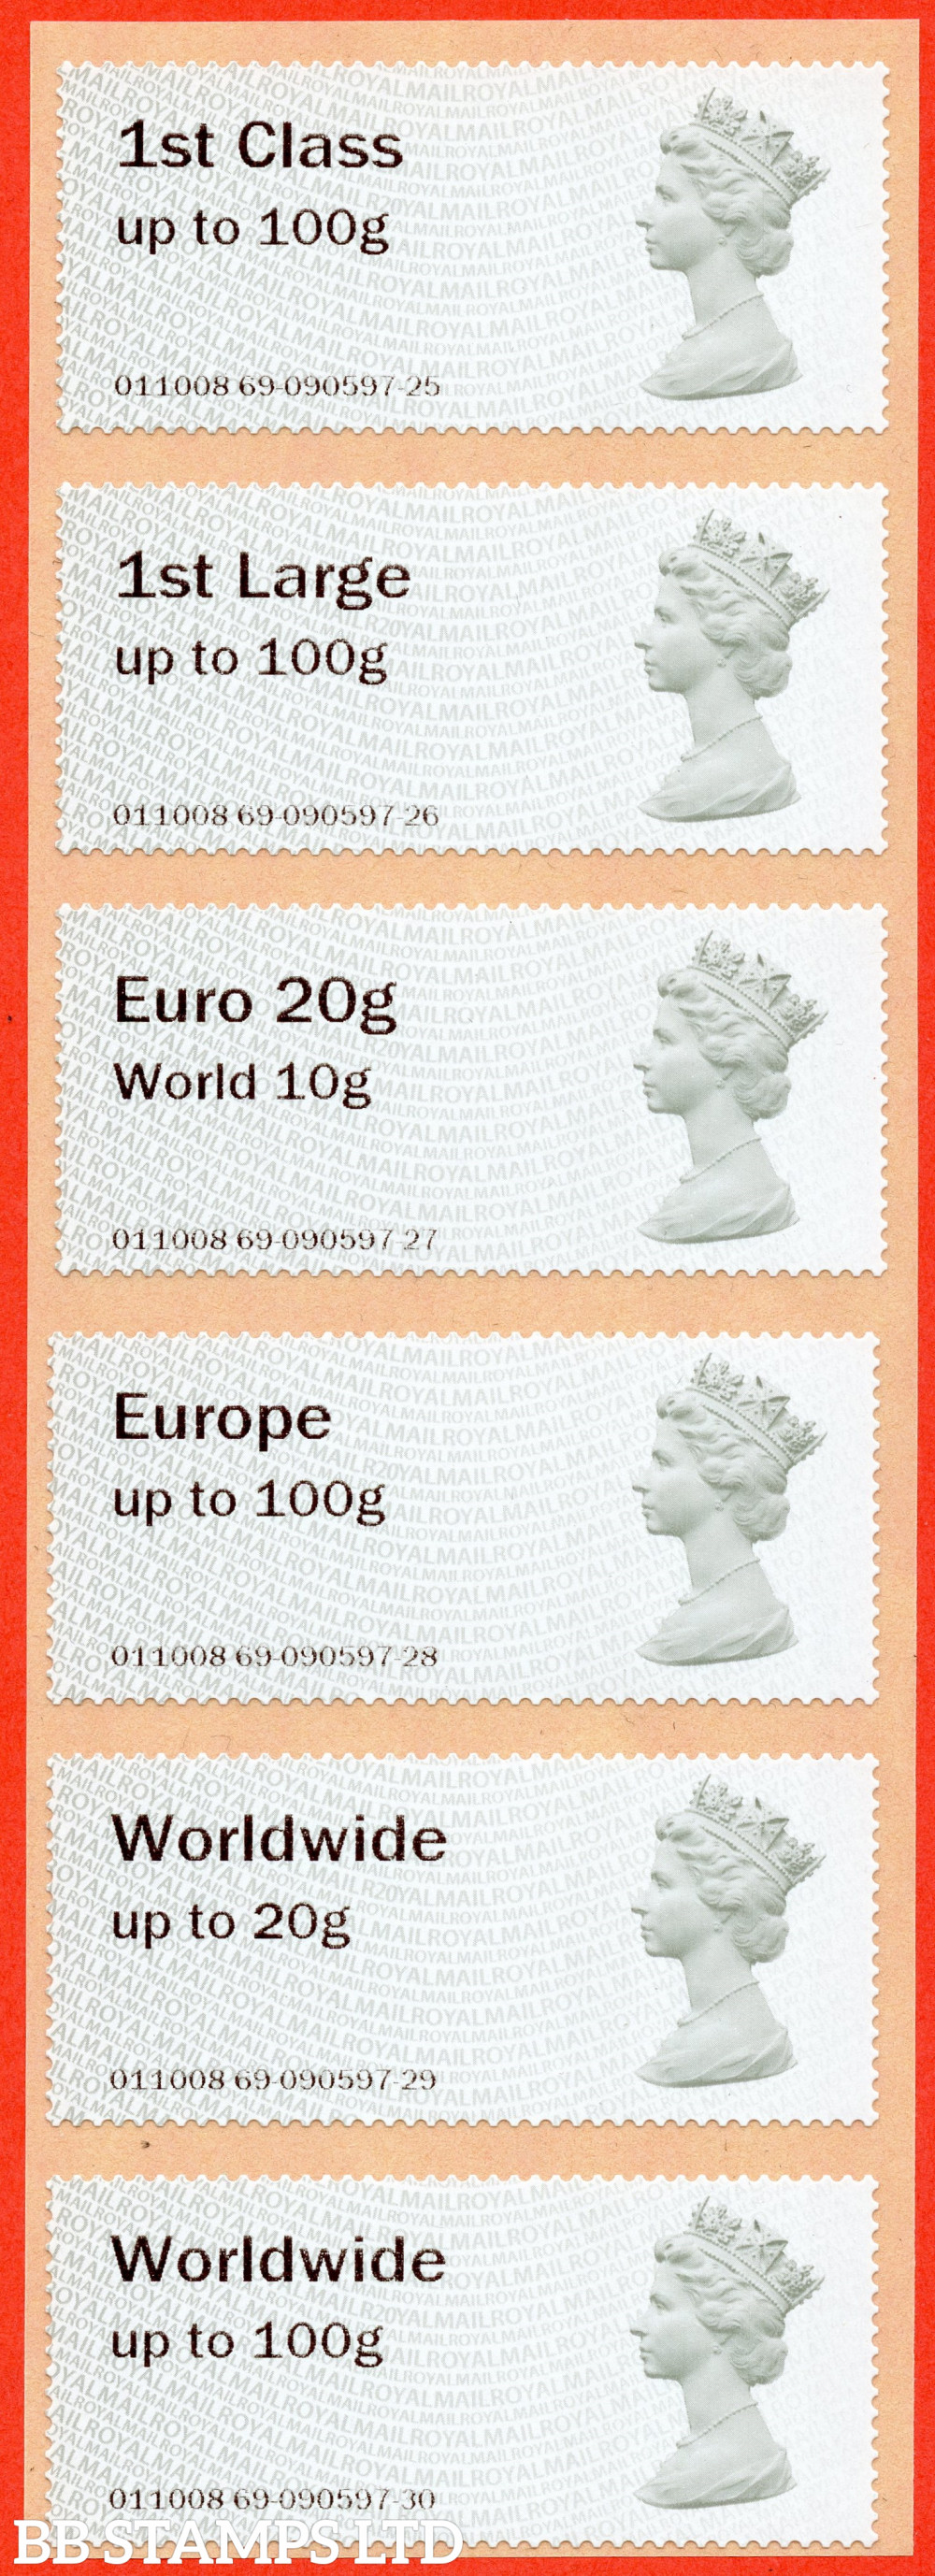 1st - Worldwide 100g Type IIA (set of 6): R20Y (elusive, very short life on these values before zoned stamps were introduced) (BK31 P4)